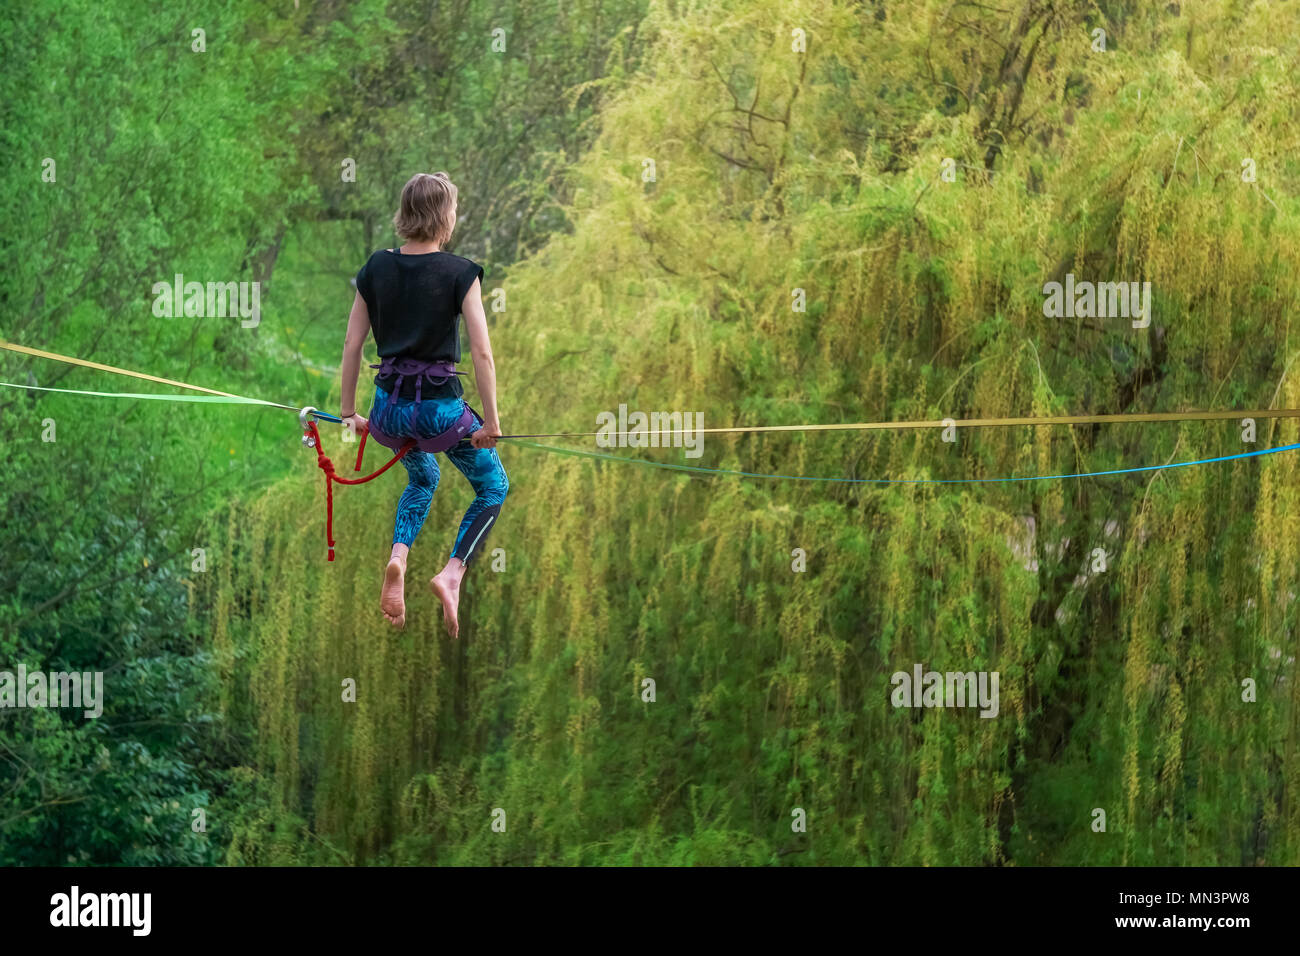 Back view of a young female tightrope walker sitting on a slackline in heights looking ahead in a park. - Stock Image